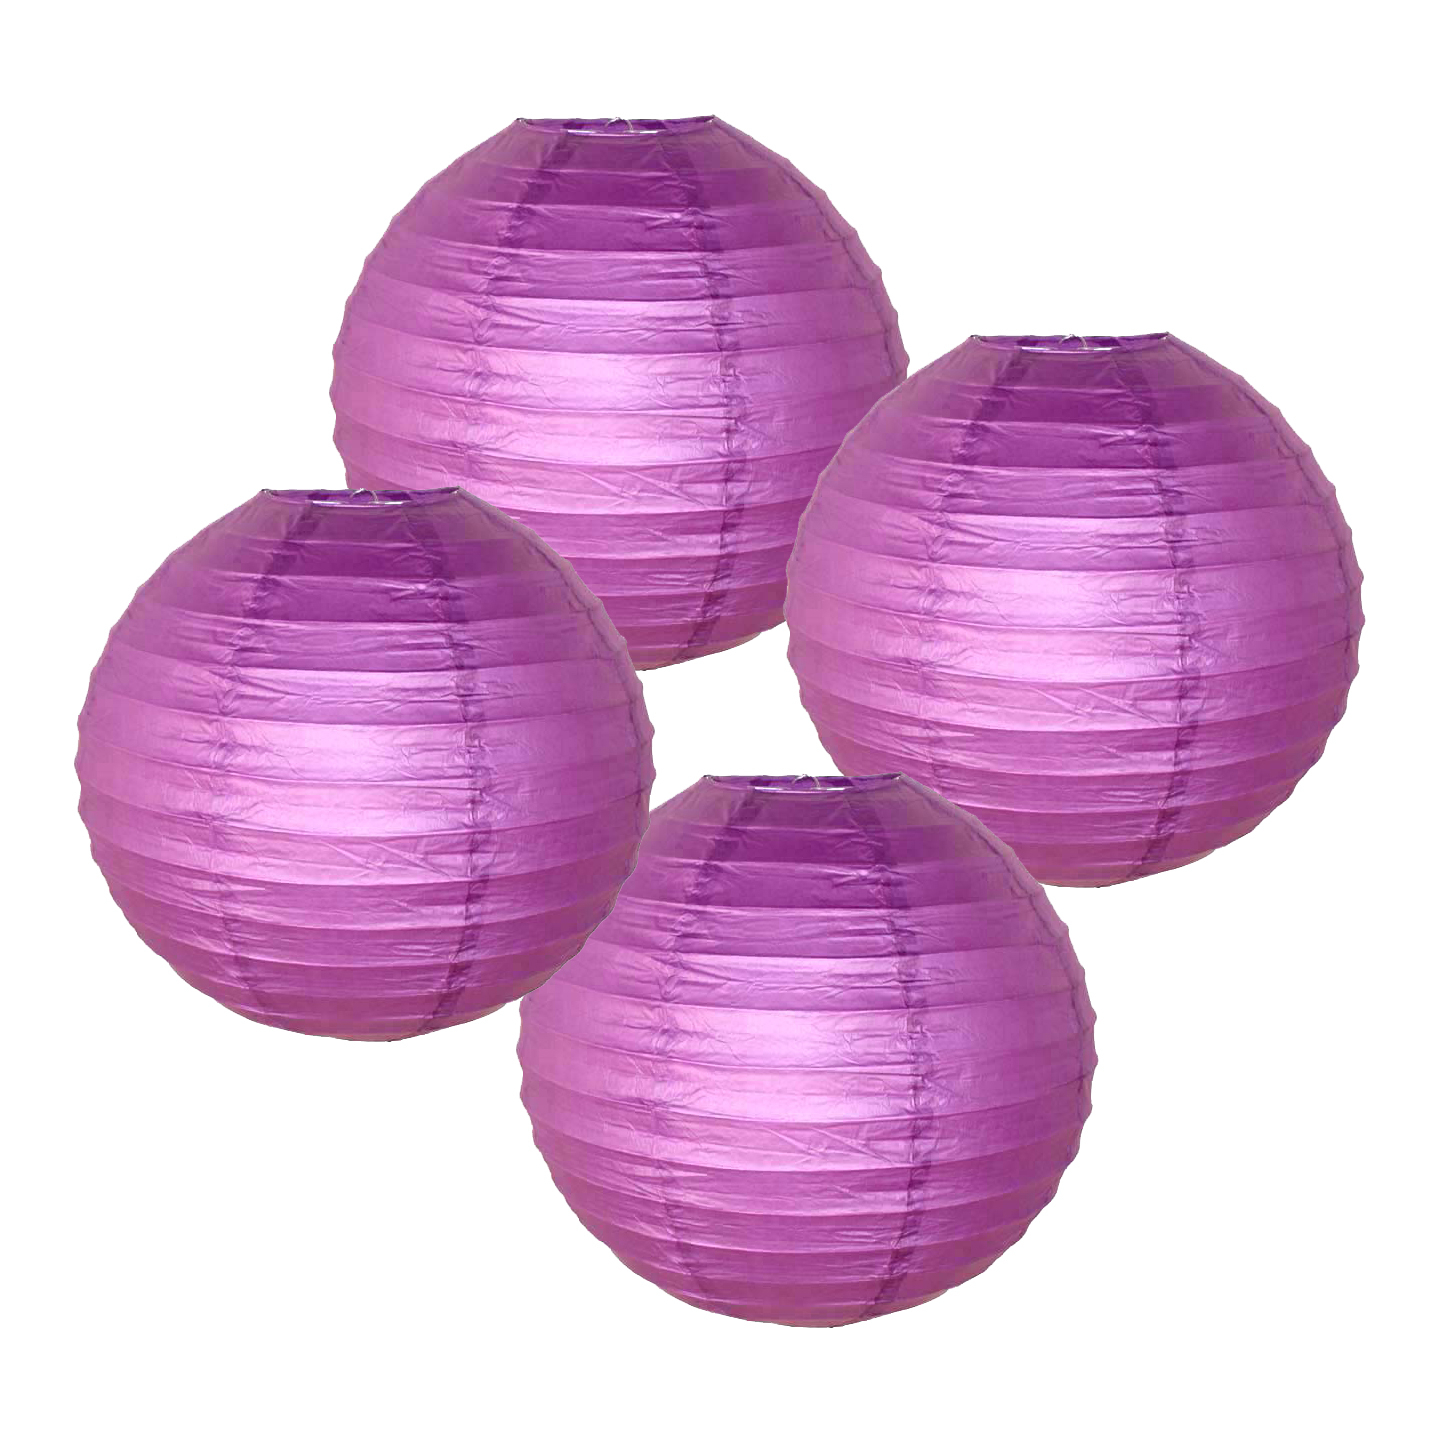 How to Make Japanese Paper Lanterns Craft for Kids 20 Pale Yellow Paper Lanterns Set Of 4 Decorative Round Chinese